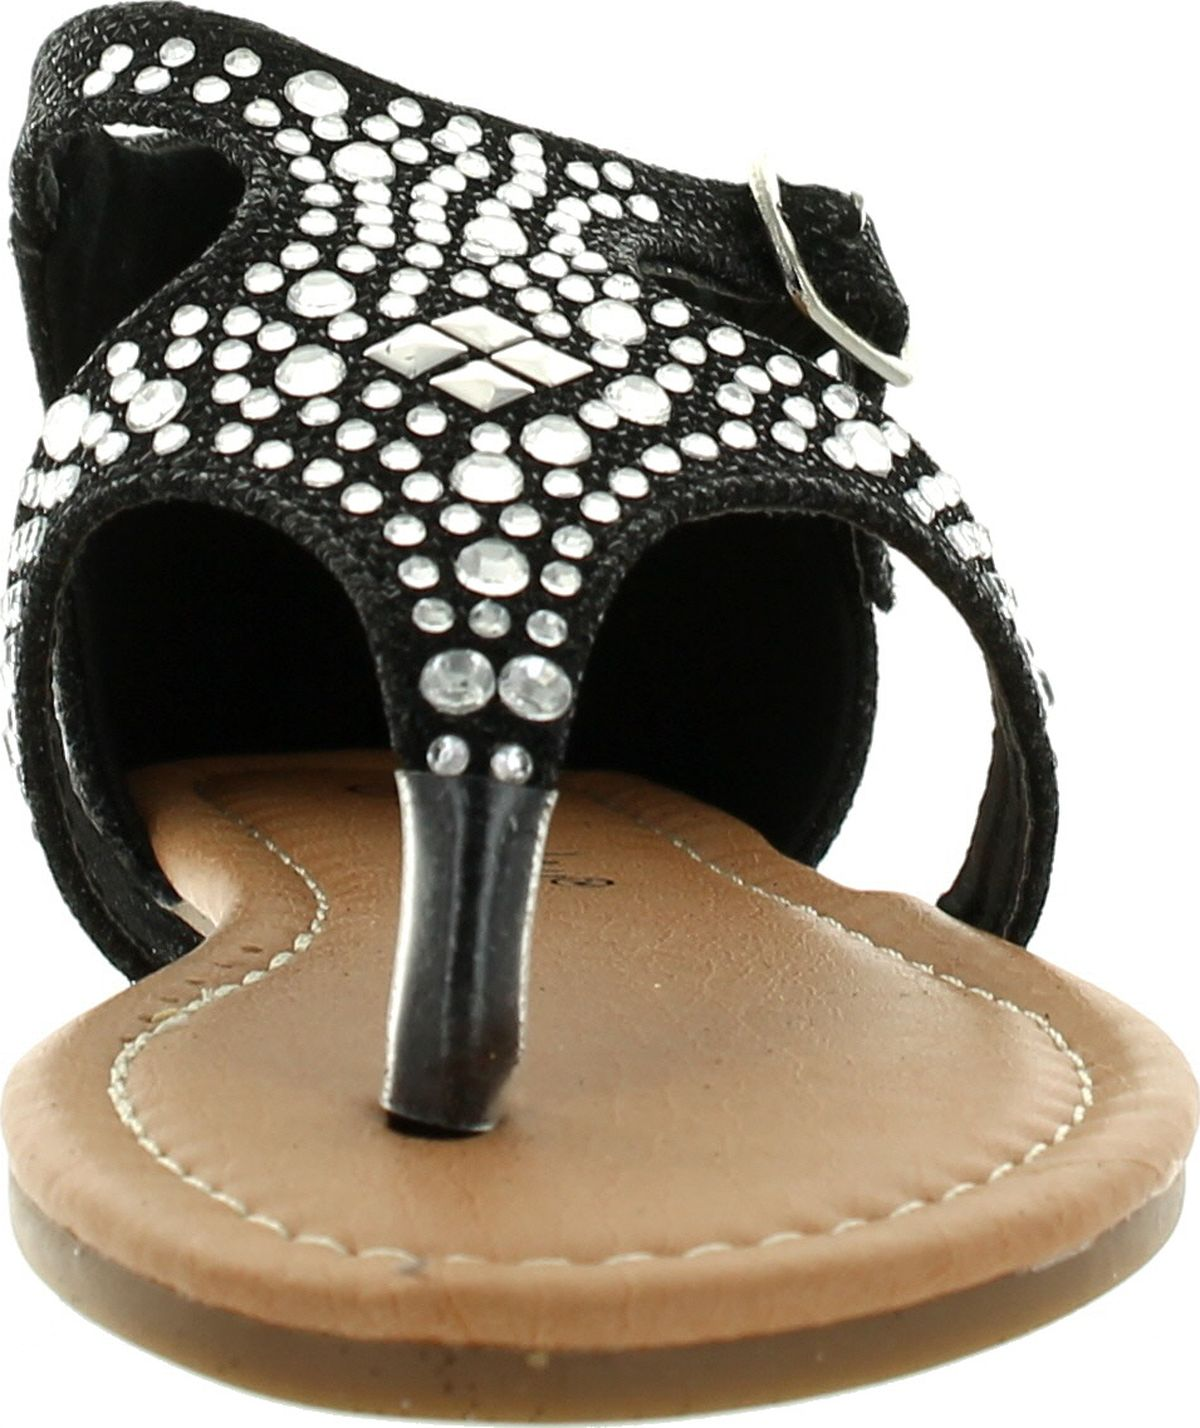 SUNNY DAY SANDRA-19 Kid/'s Girl Rhinestone T-Strap Cut Out Flat Sandals